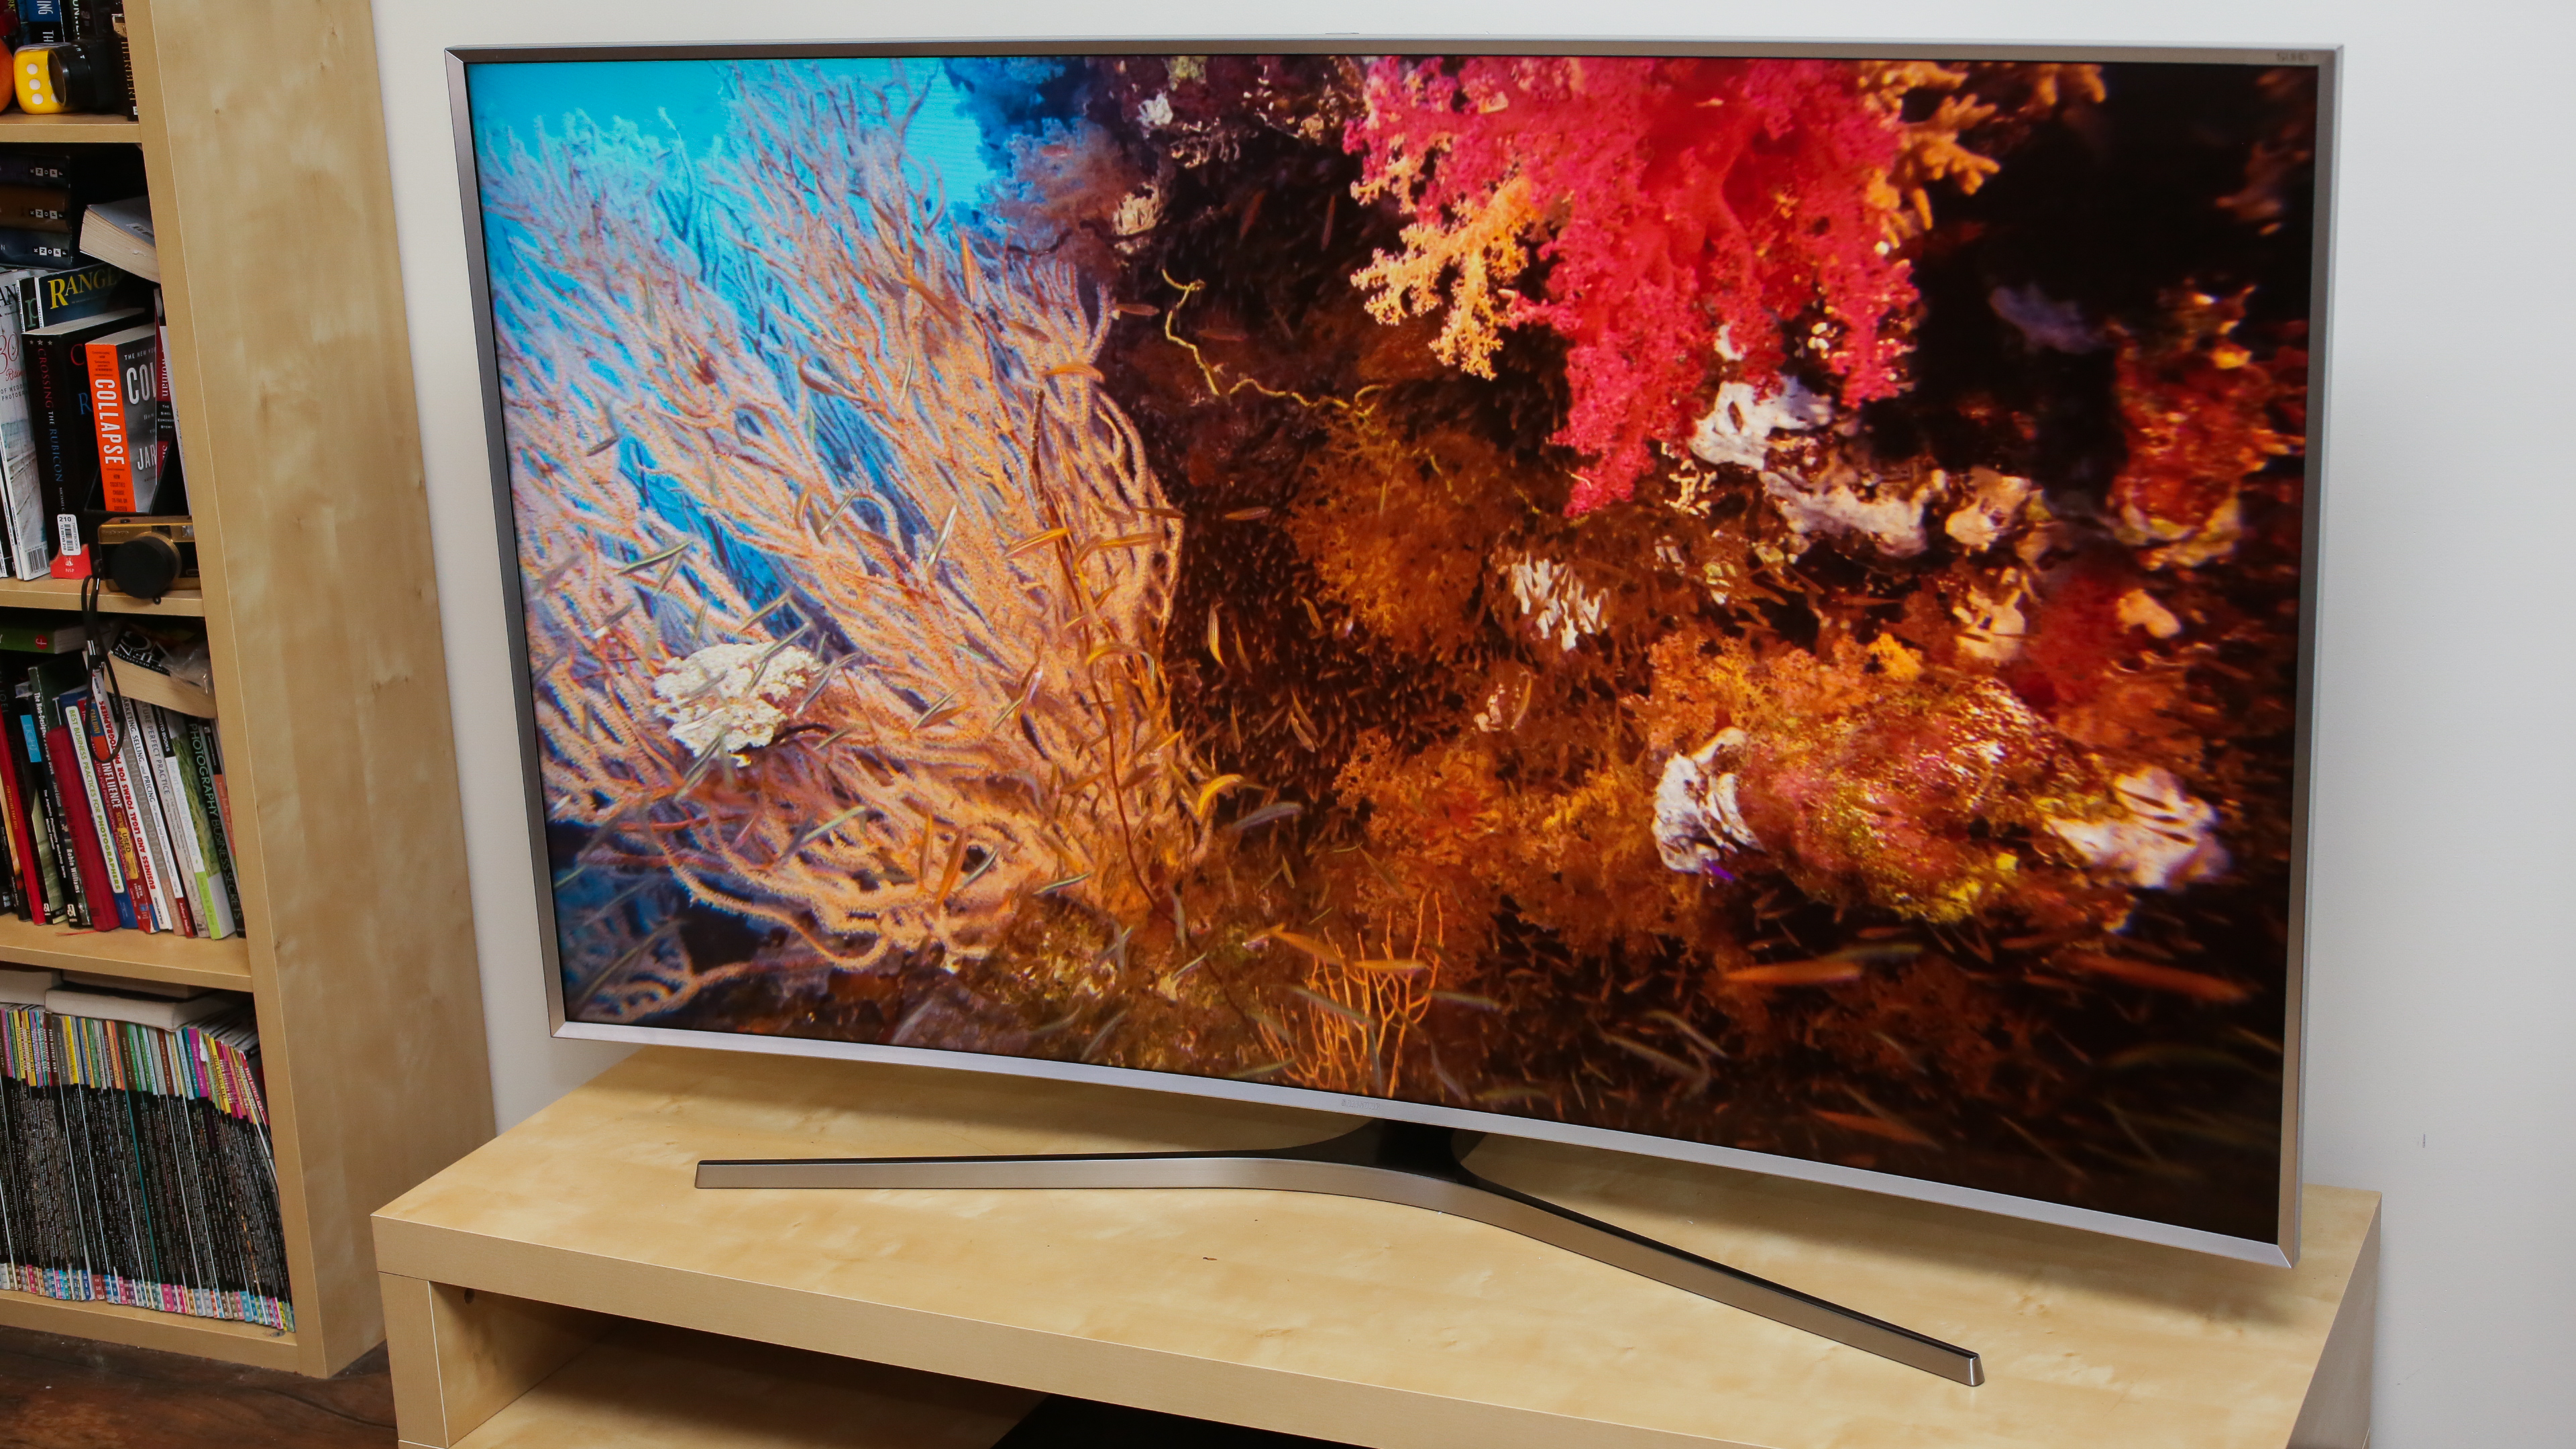 A great high-end LCD TV, but it can't keep up with OLED